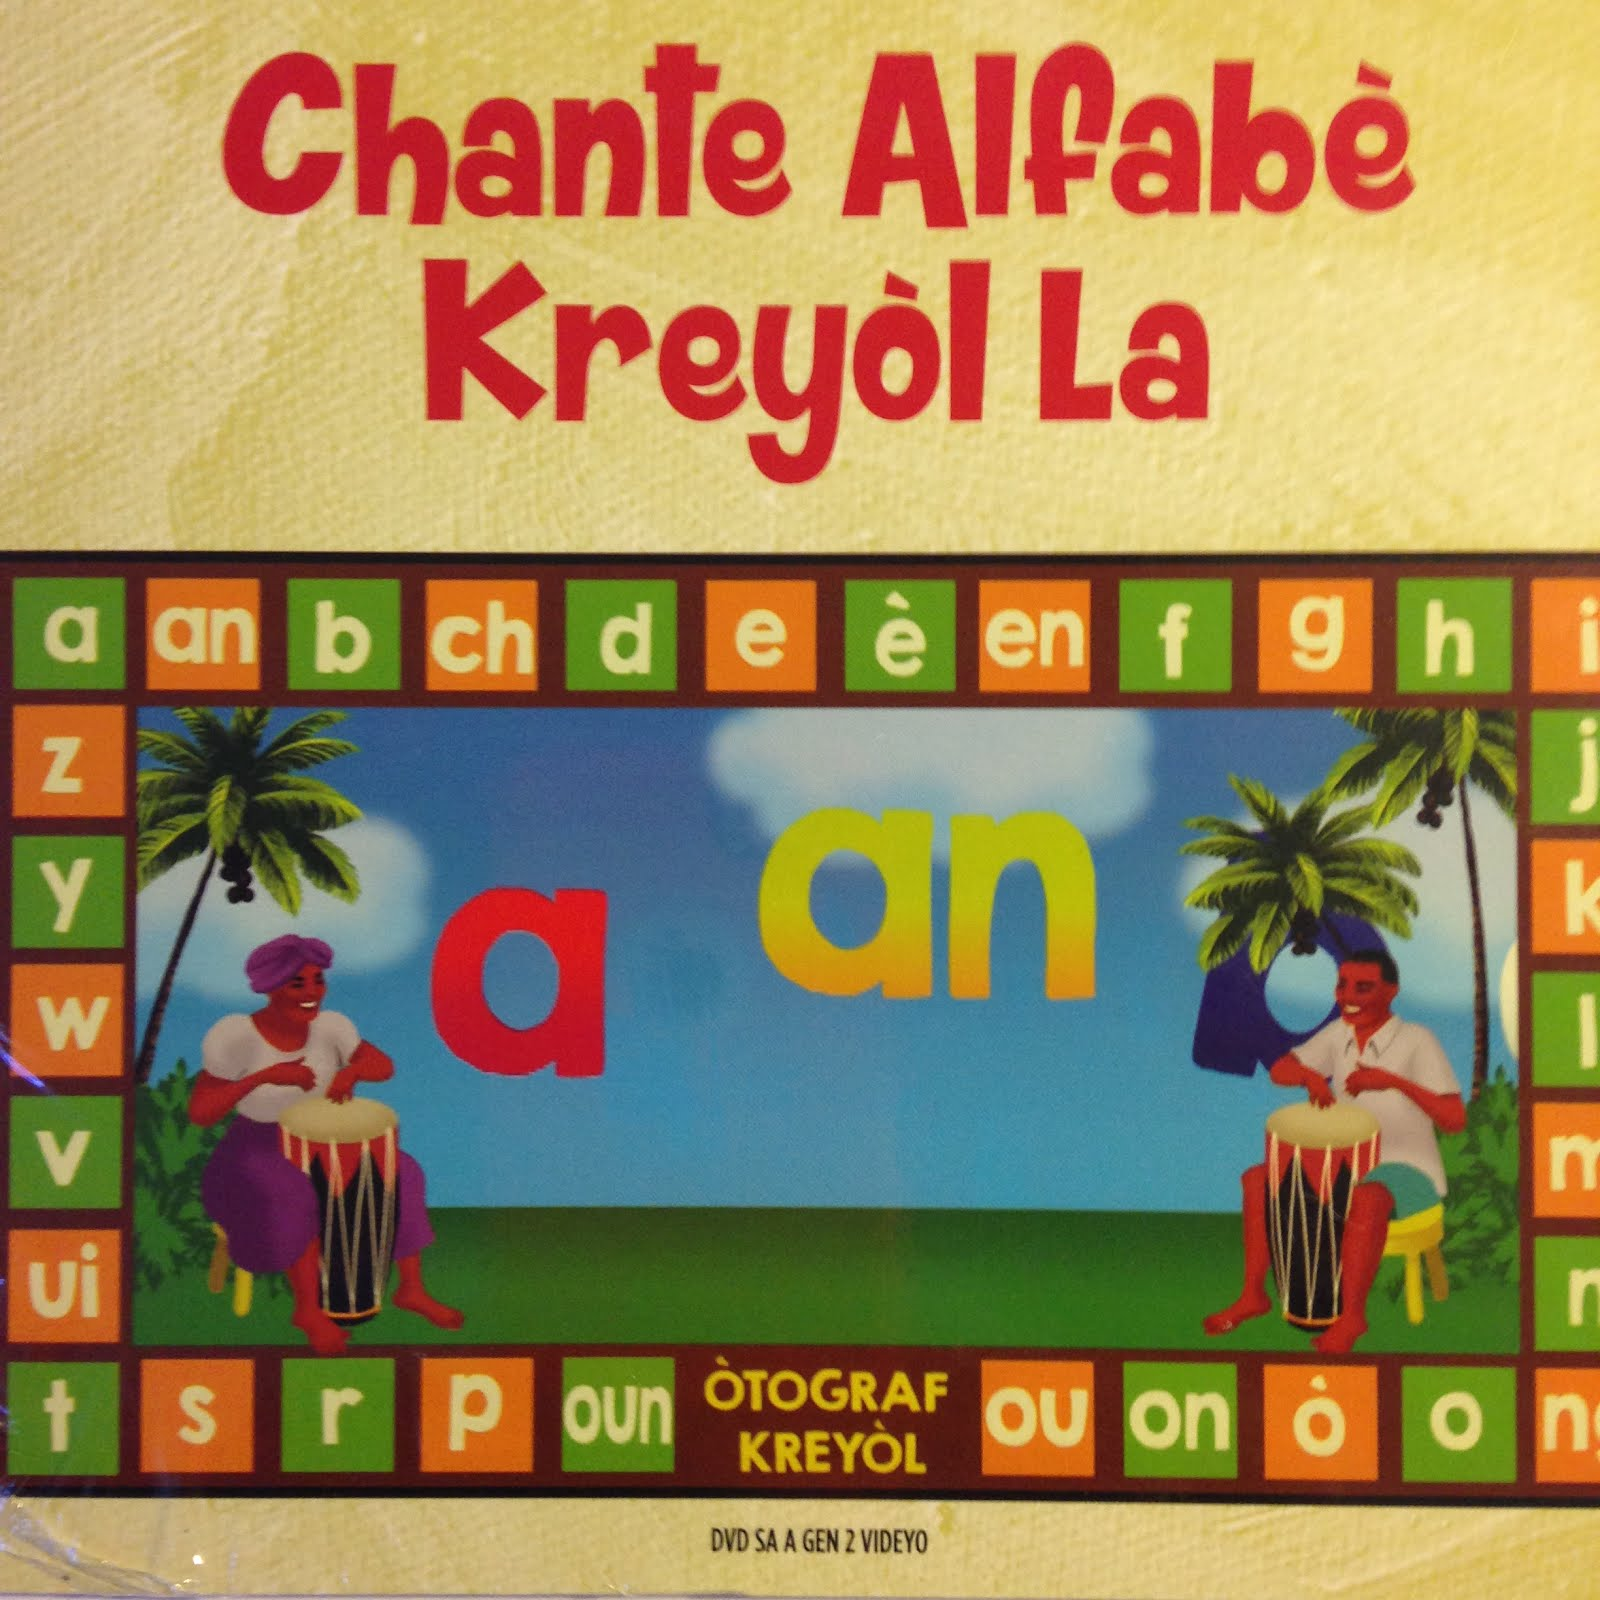 Get the kreyòl alphabet DVD from EDUCA VISION INC.